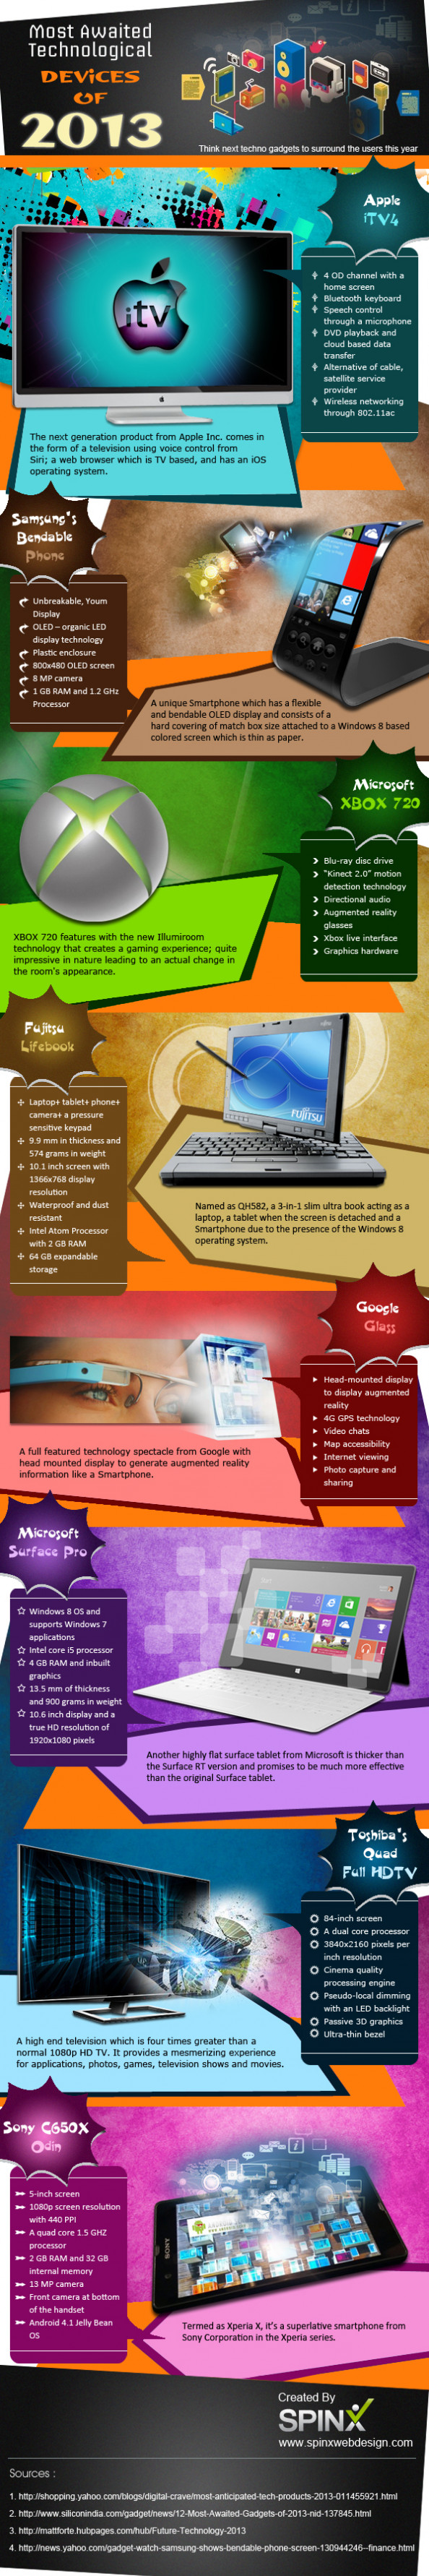 Most Awaited Technological Devices of 2013 Infographic